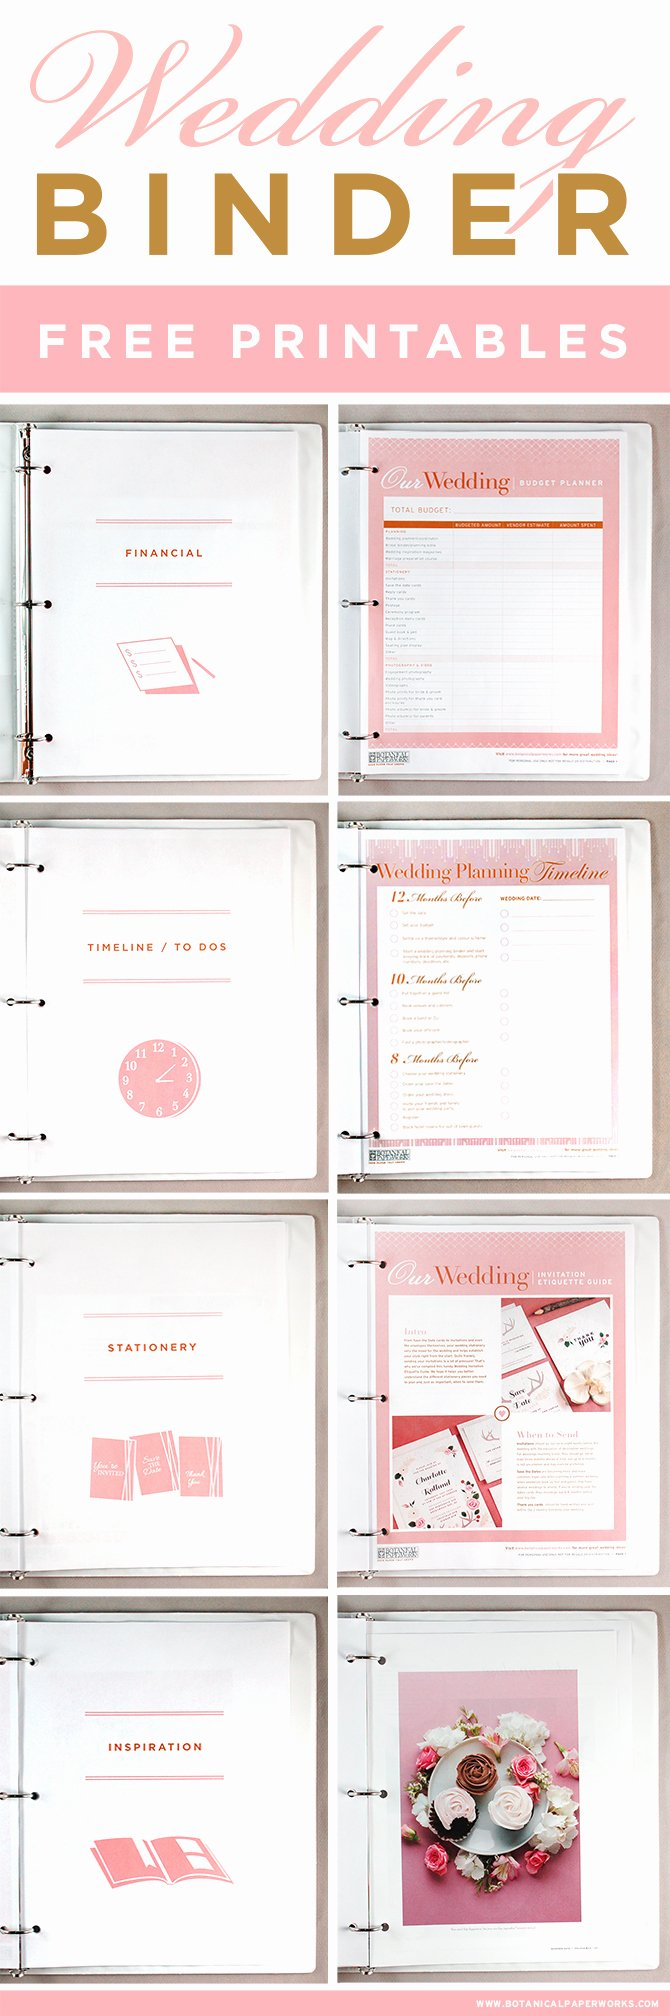 Wedding Planner Website Template Fresh Free Printables Wedding Planning Binder Blog